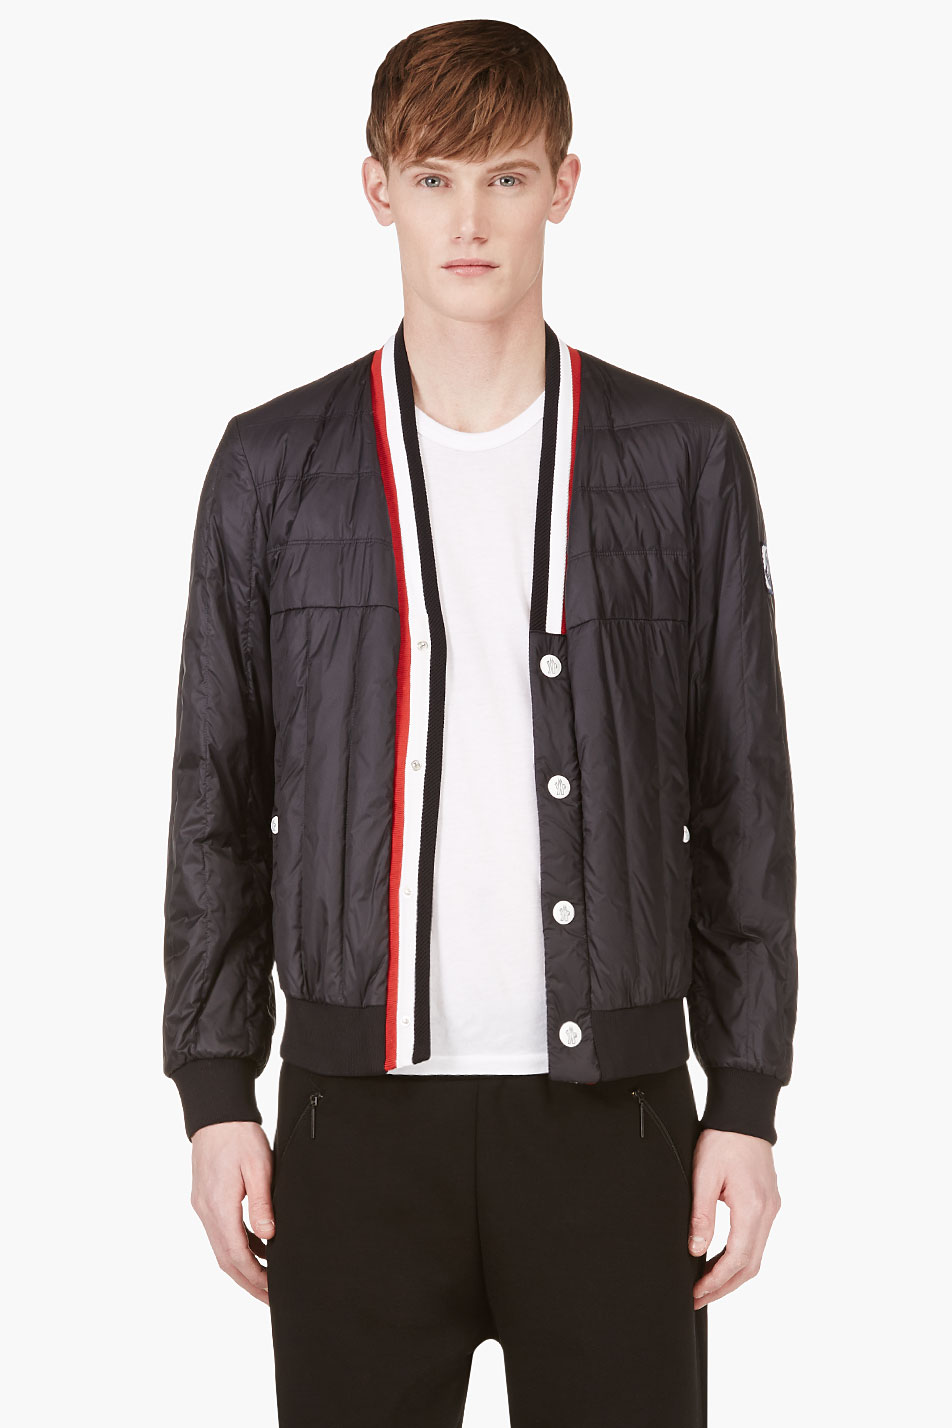 Quilted V-Neck Jacket tricolor luxury menswear 1